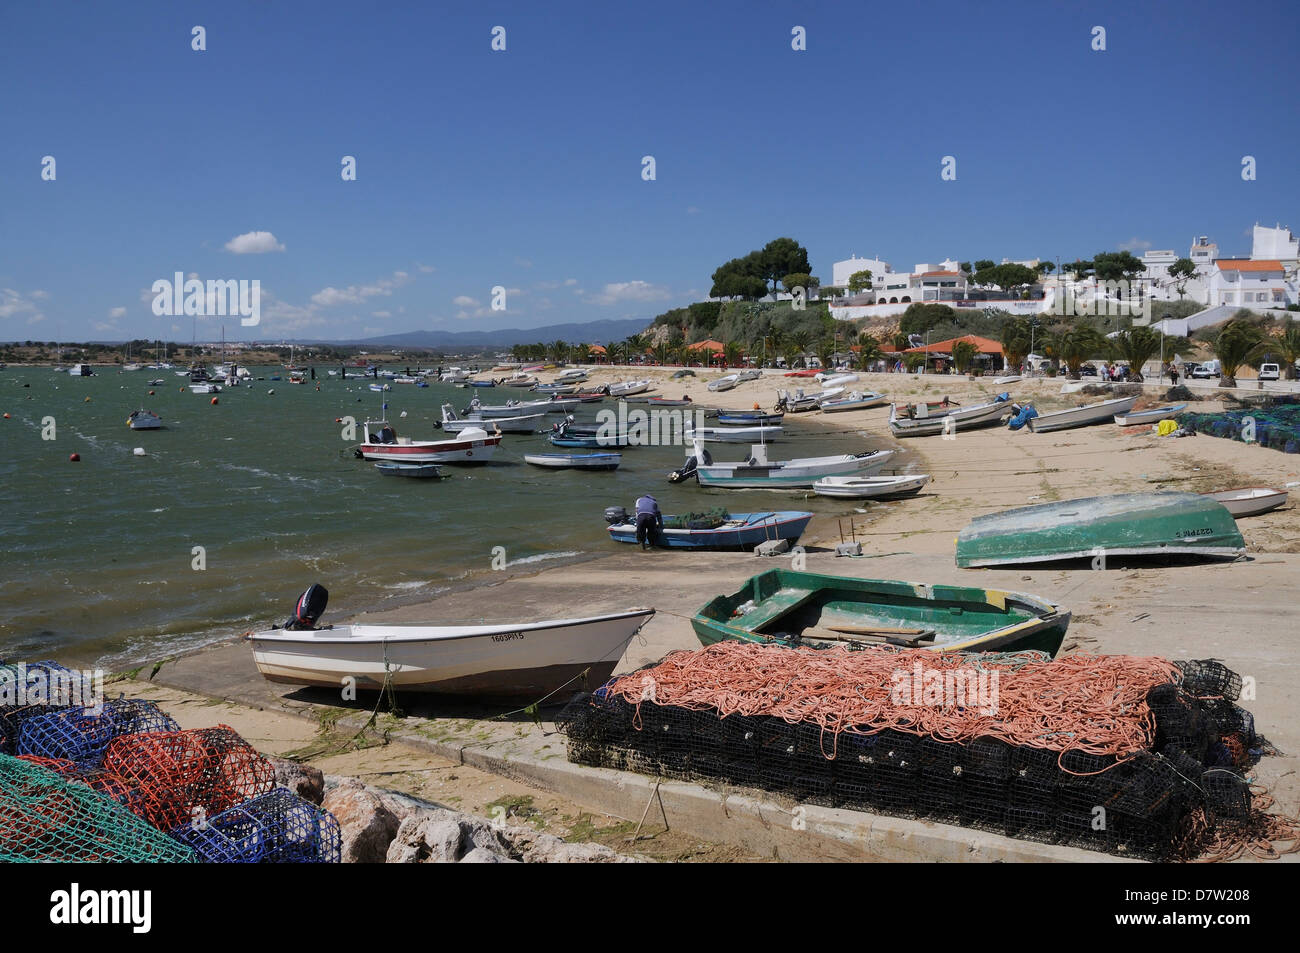 Lobster pots on quayside next to moored fishing boats, Alvor, near Portimao, Algarve, Portugal - Stock Image